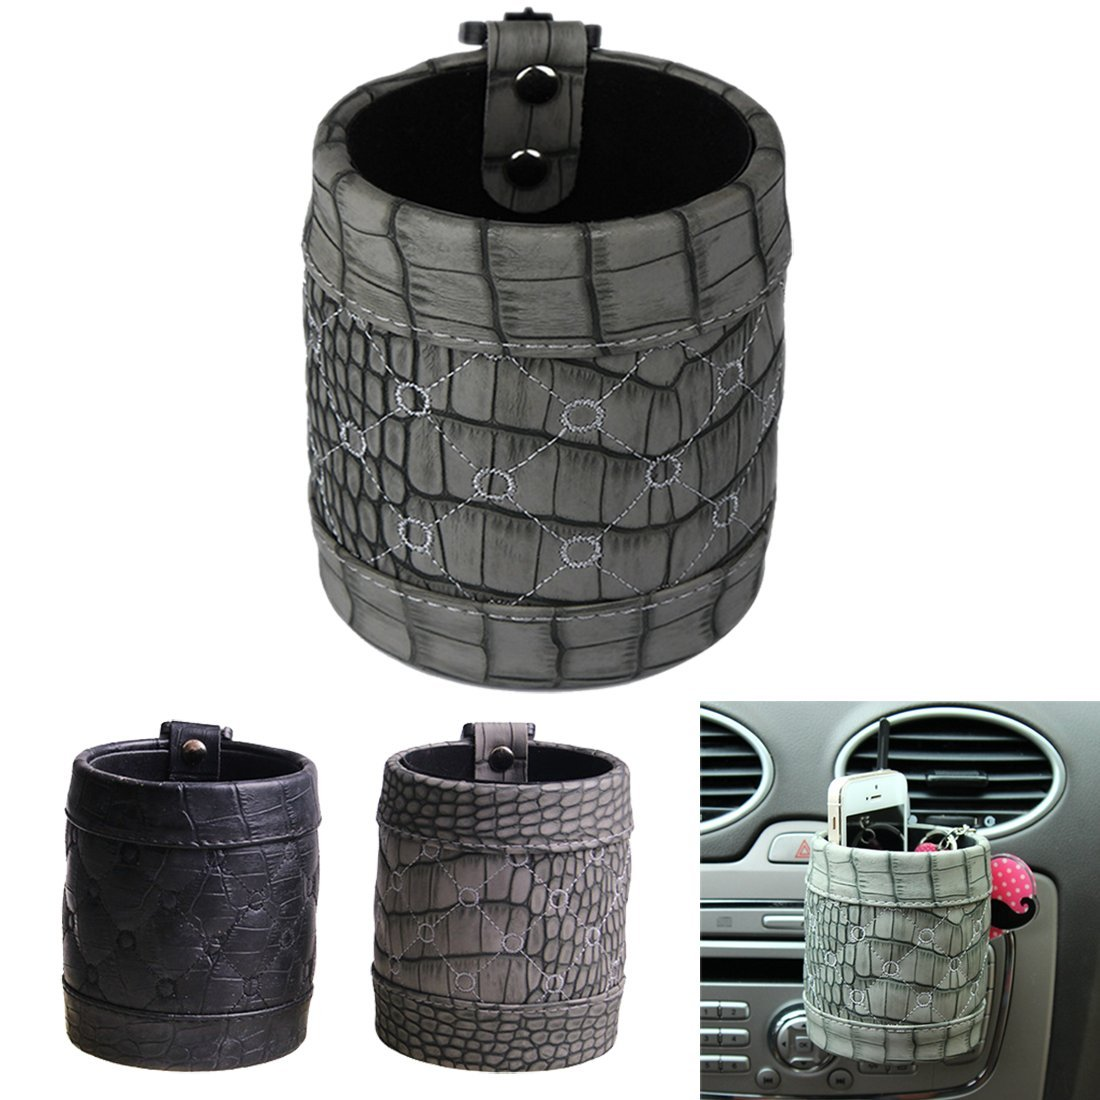 Chytaii Car Air Outlet Phone Pocket Pouch Bag Storage Organiser Holder Mobile Phone Auto Arrangement Storage Carriage Bag Case with Hook Grey